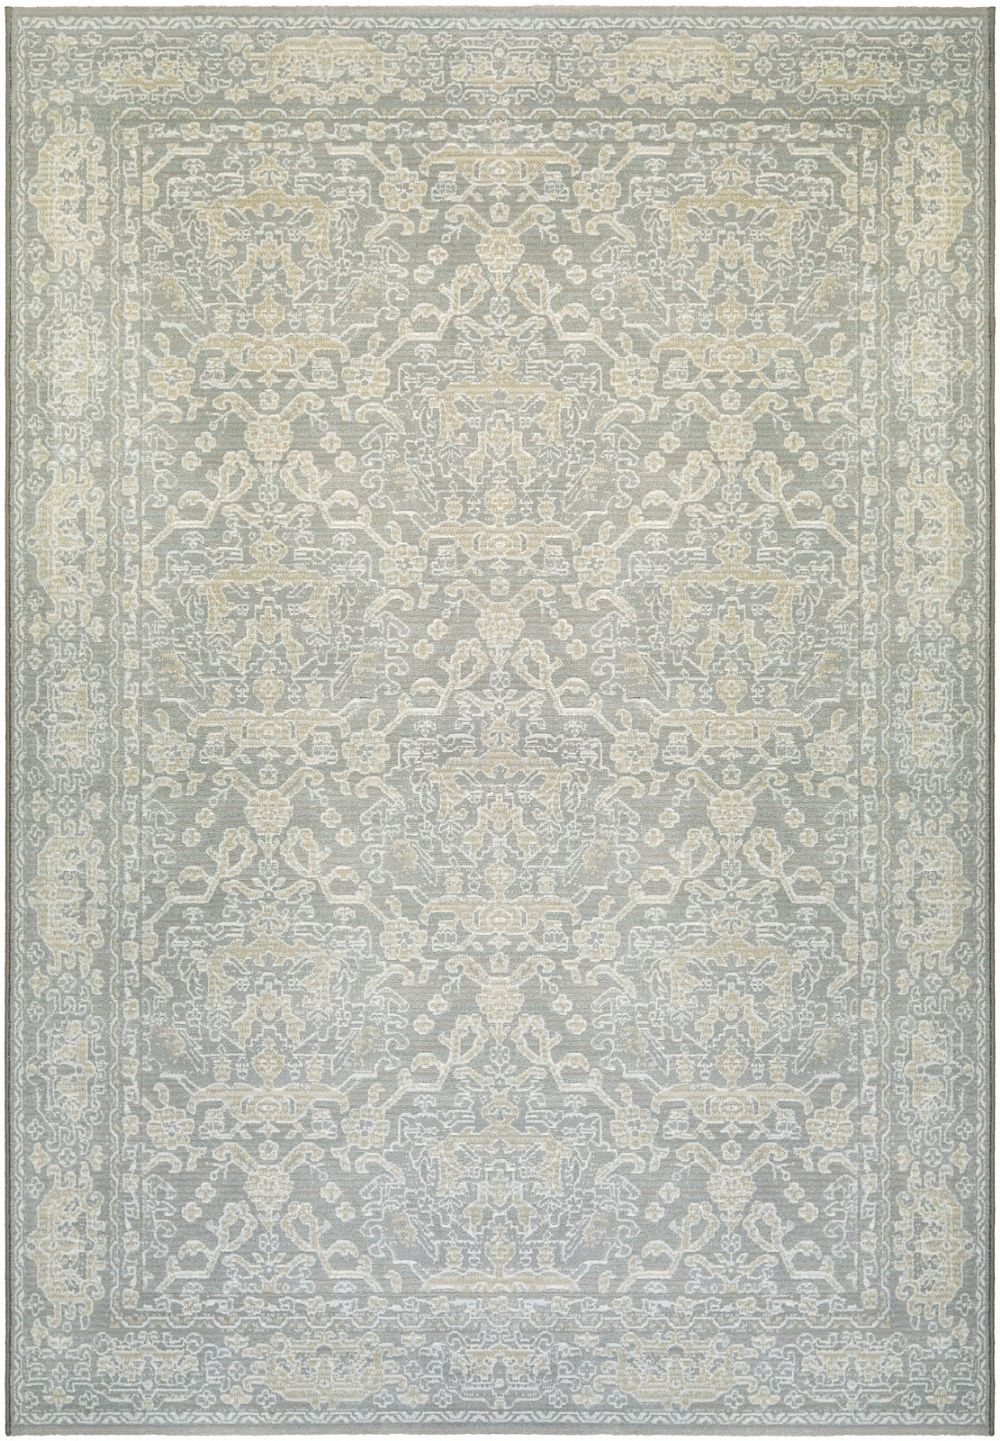 couristan marina southwestern/lodge area rug collection